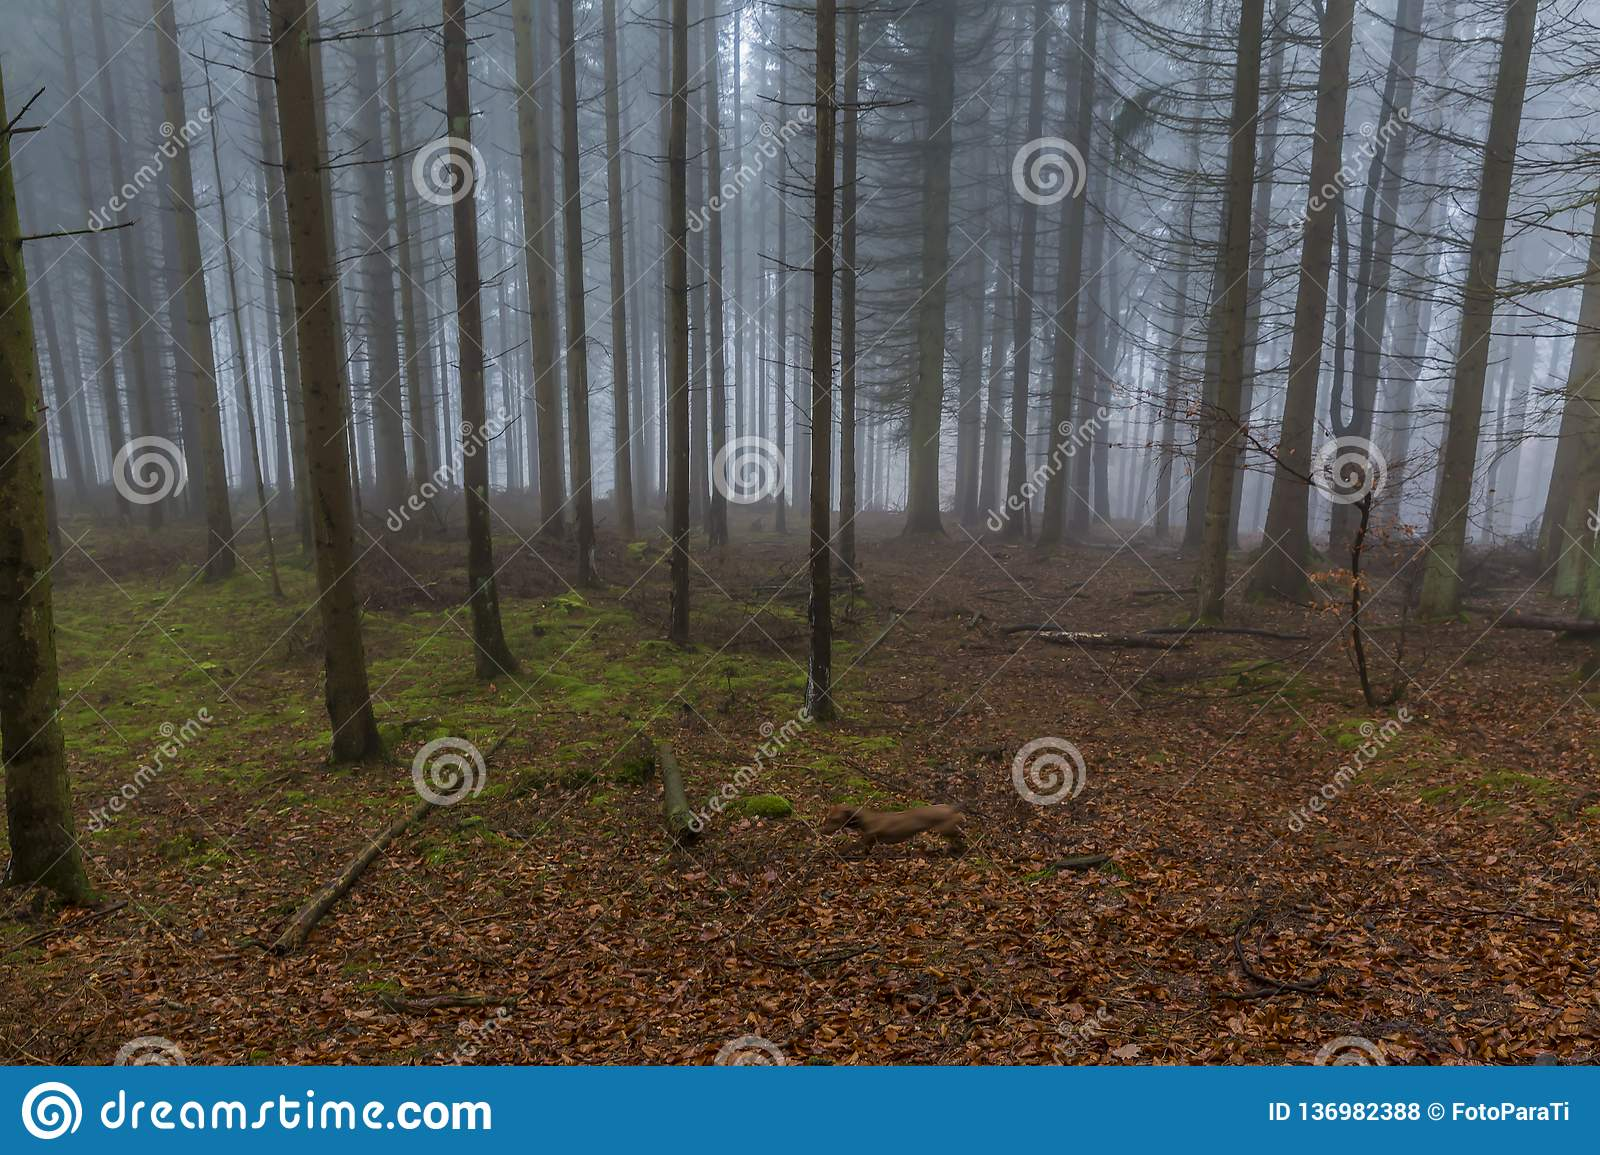 Image of tall pine trees in the forest with moss and leaves on the ground with a lot of fog